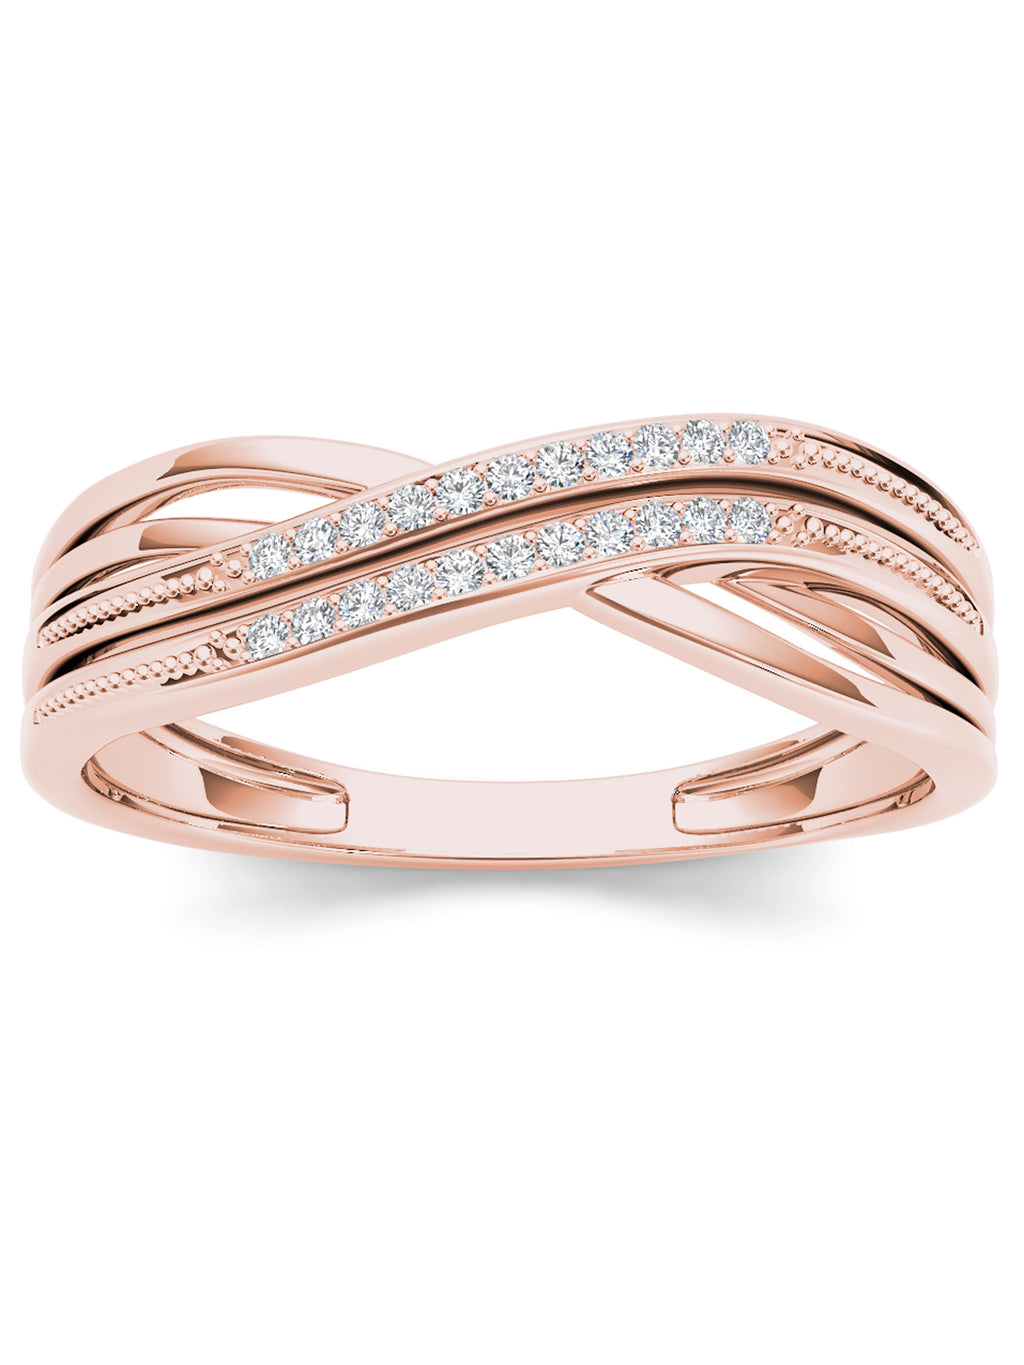 1/20CT TDW DIAMOND RIBBON CROSSOVER 10K ROSE GOLD FASHION RING picktookshop.myshopify.com [gogle] [sale] [online]